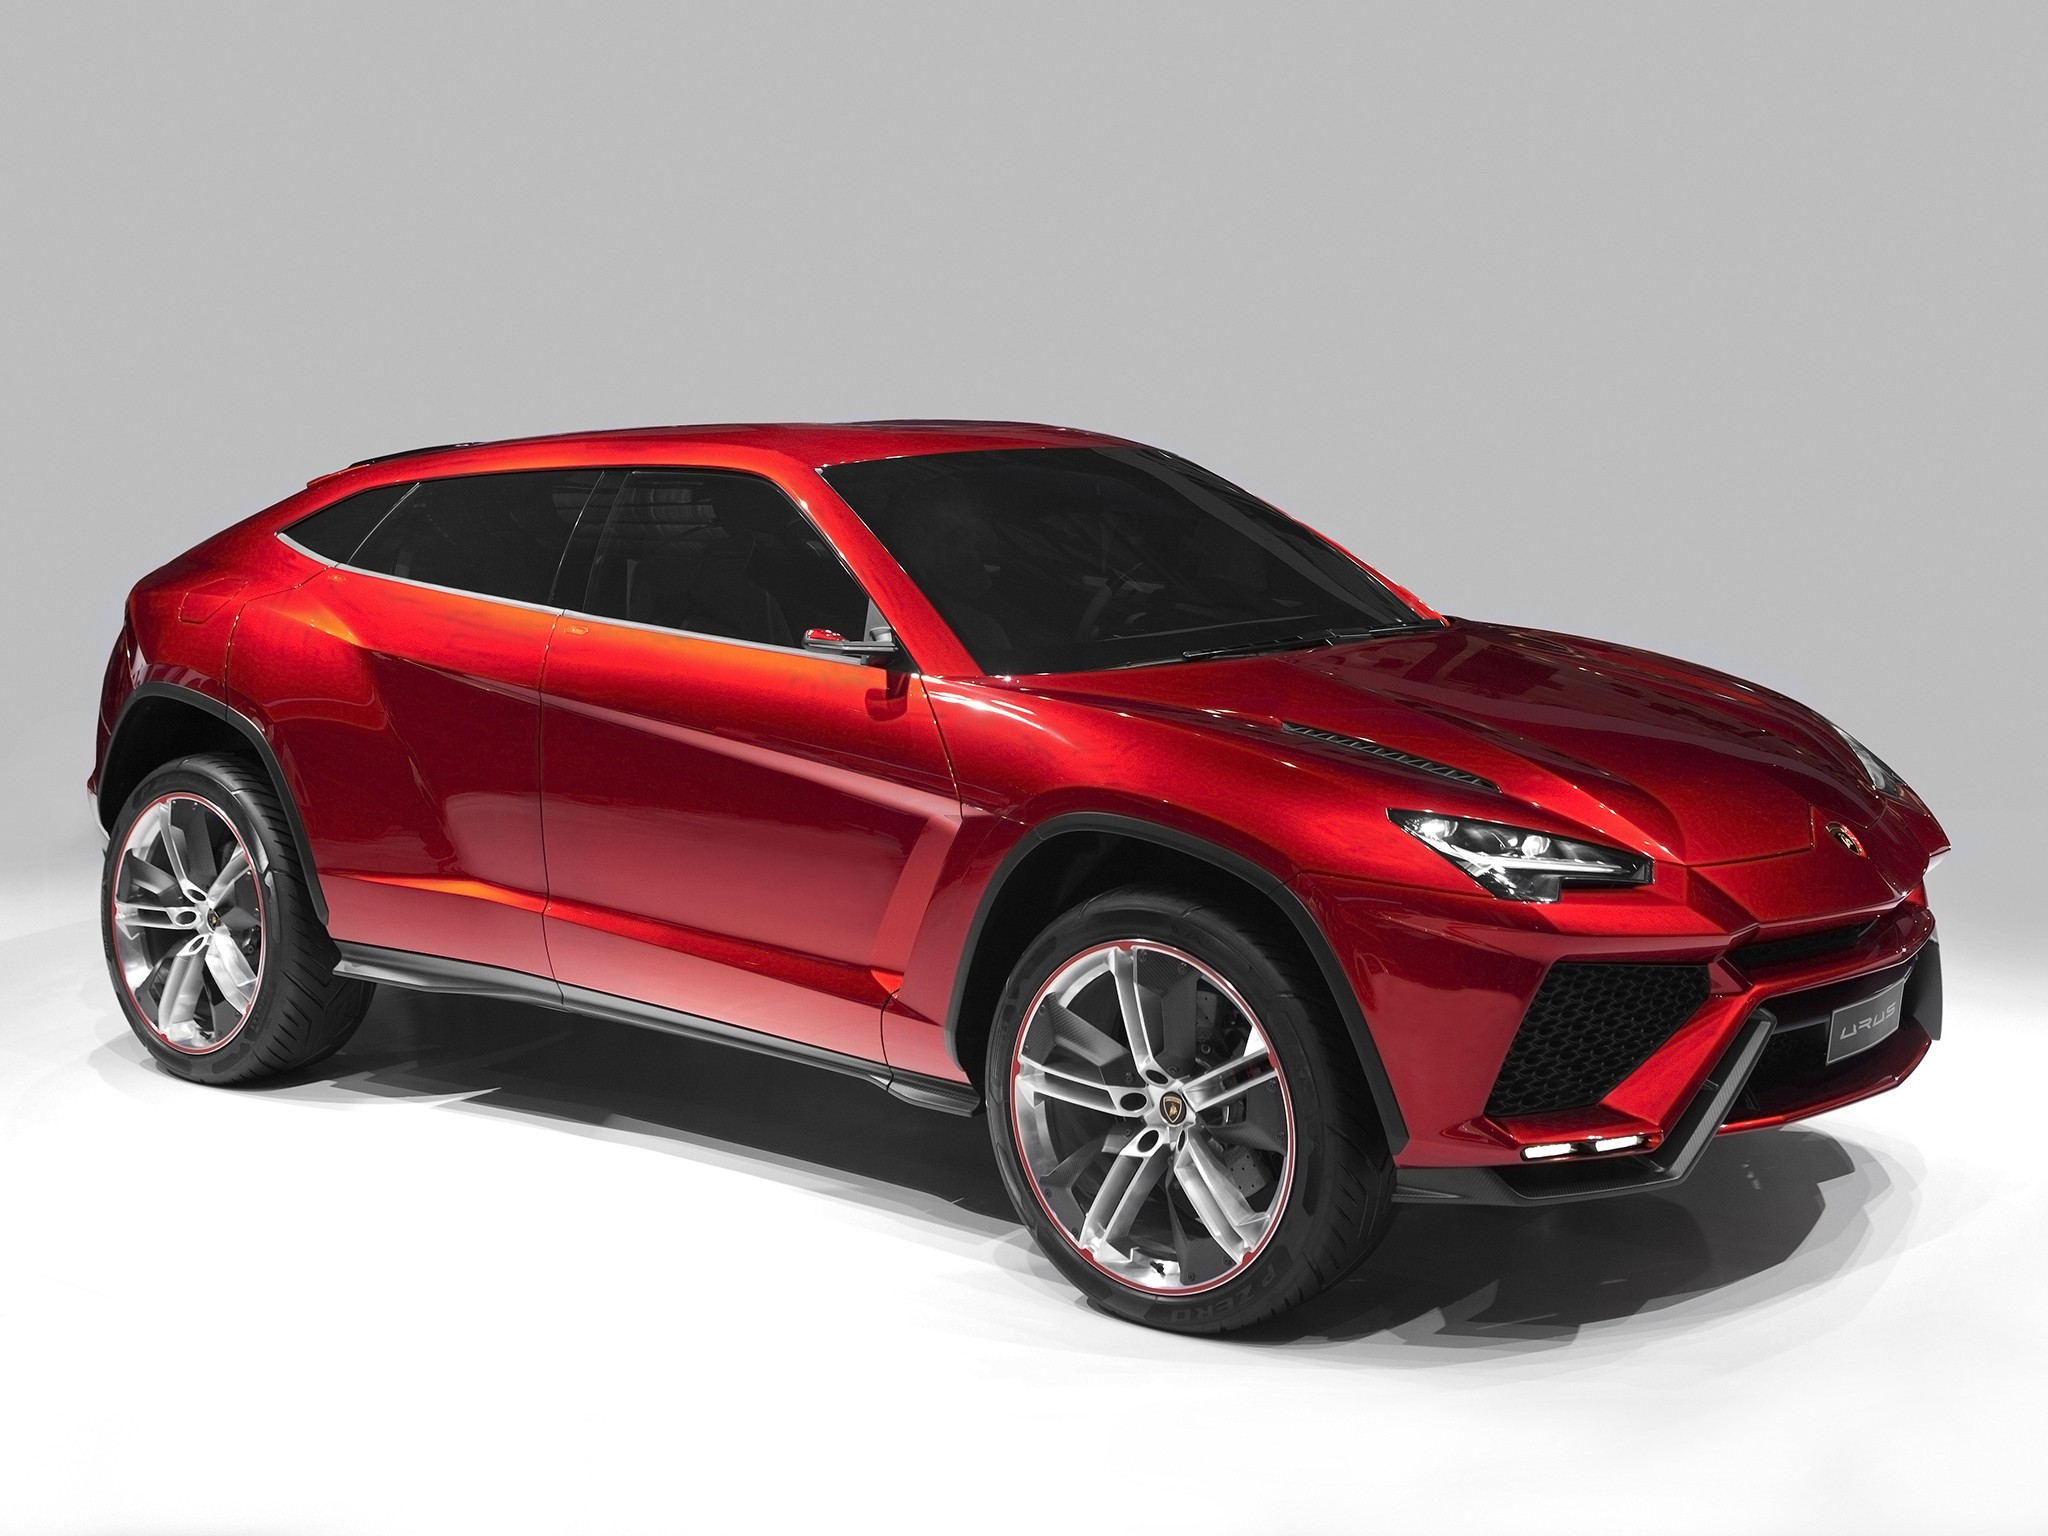 Lamborghini Urus V8 Engine Won T Power The Automaker S